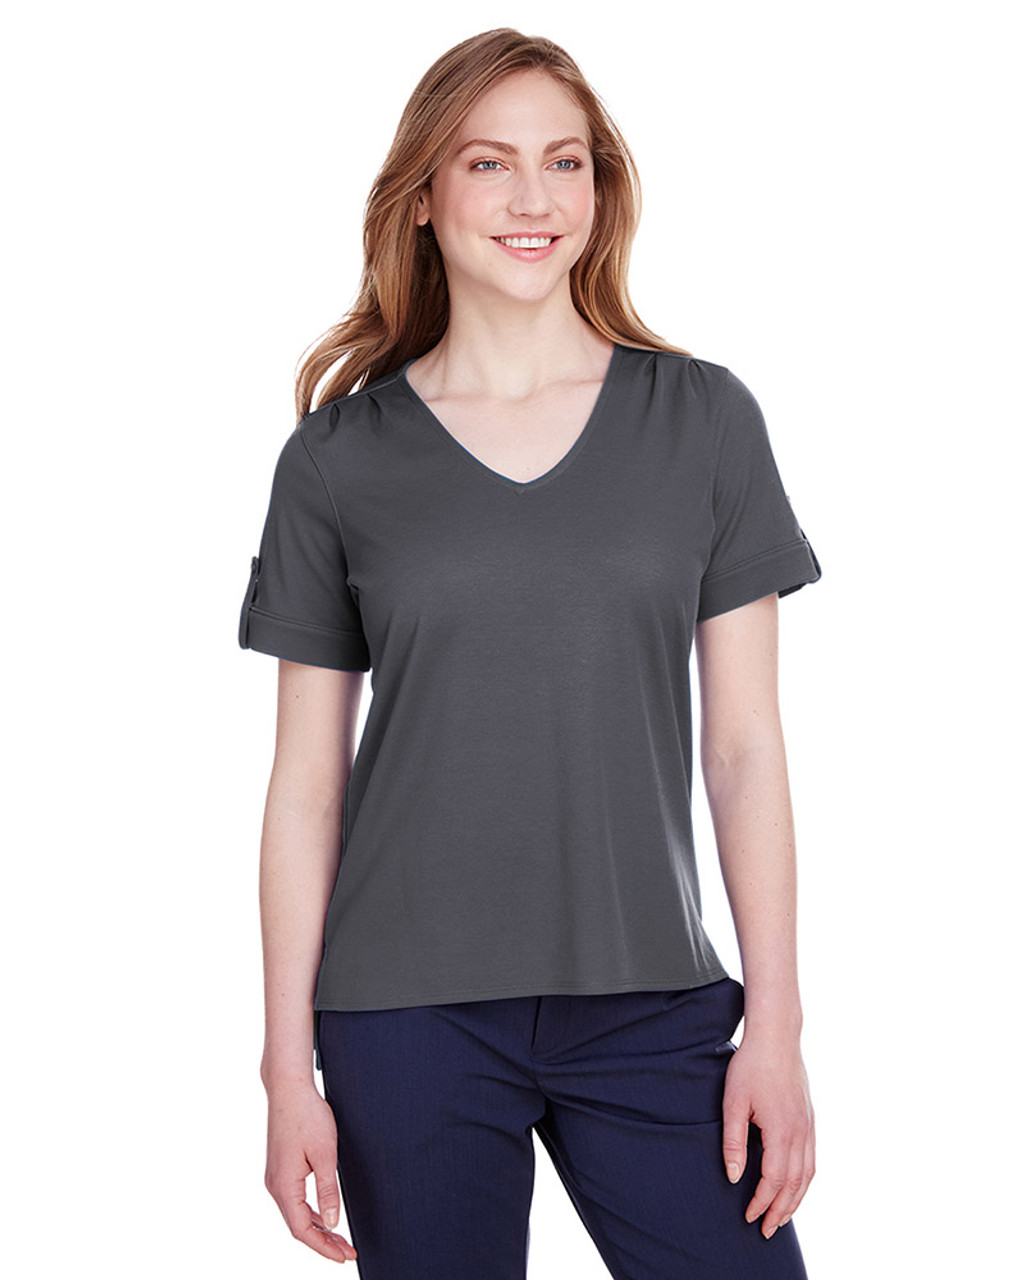 Graphite - DG20WB Devon & Jones Ladies' CrownLux Performance™ Plaited Rolled-Sleeve Top | Blankclothing.ca